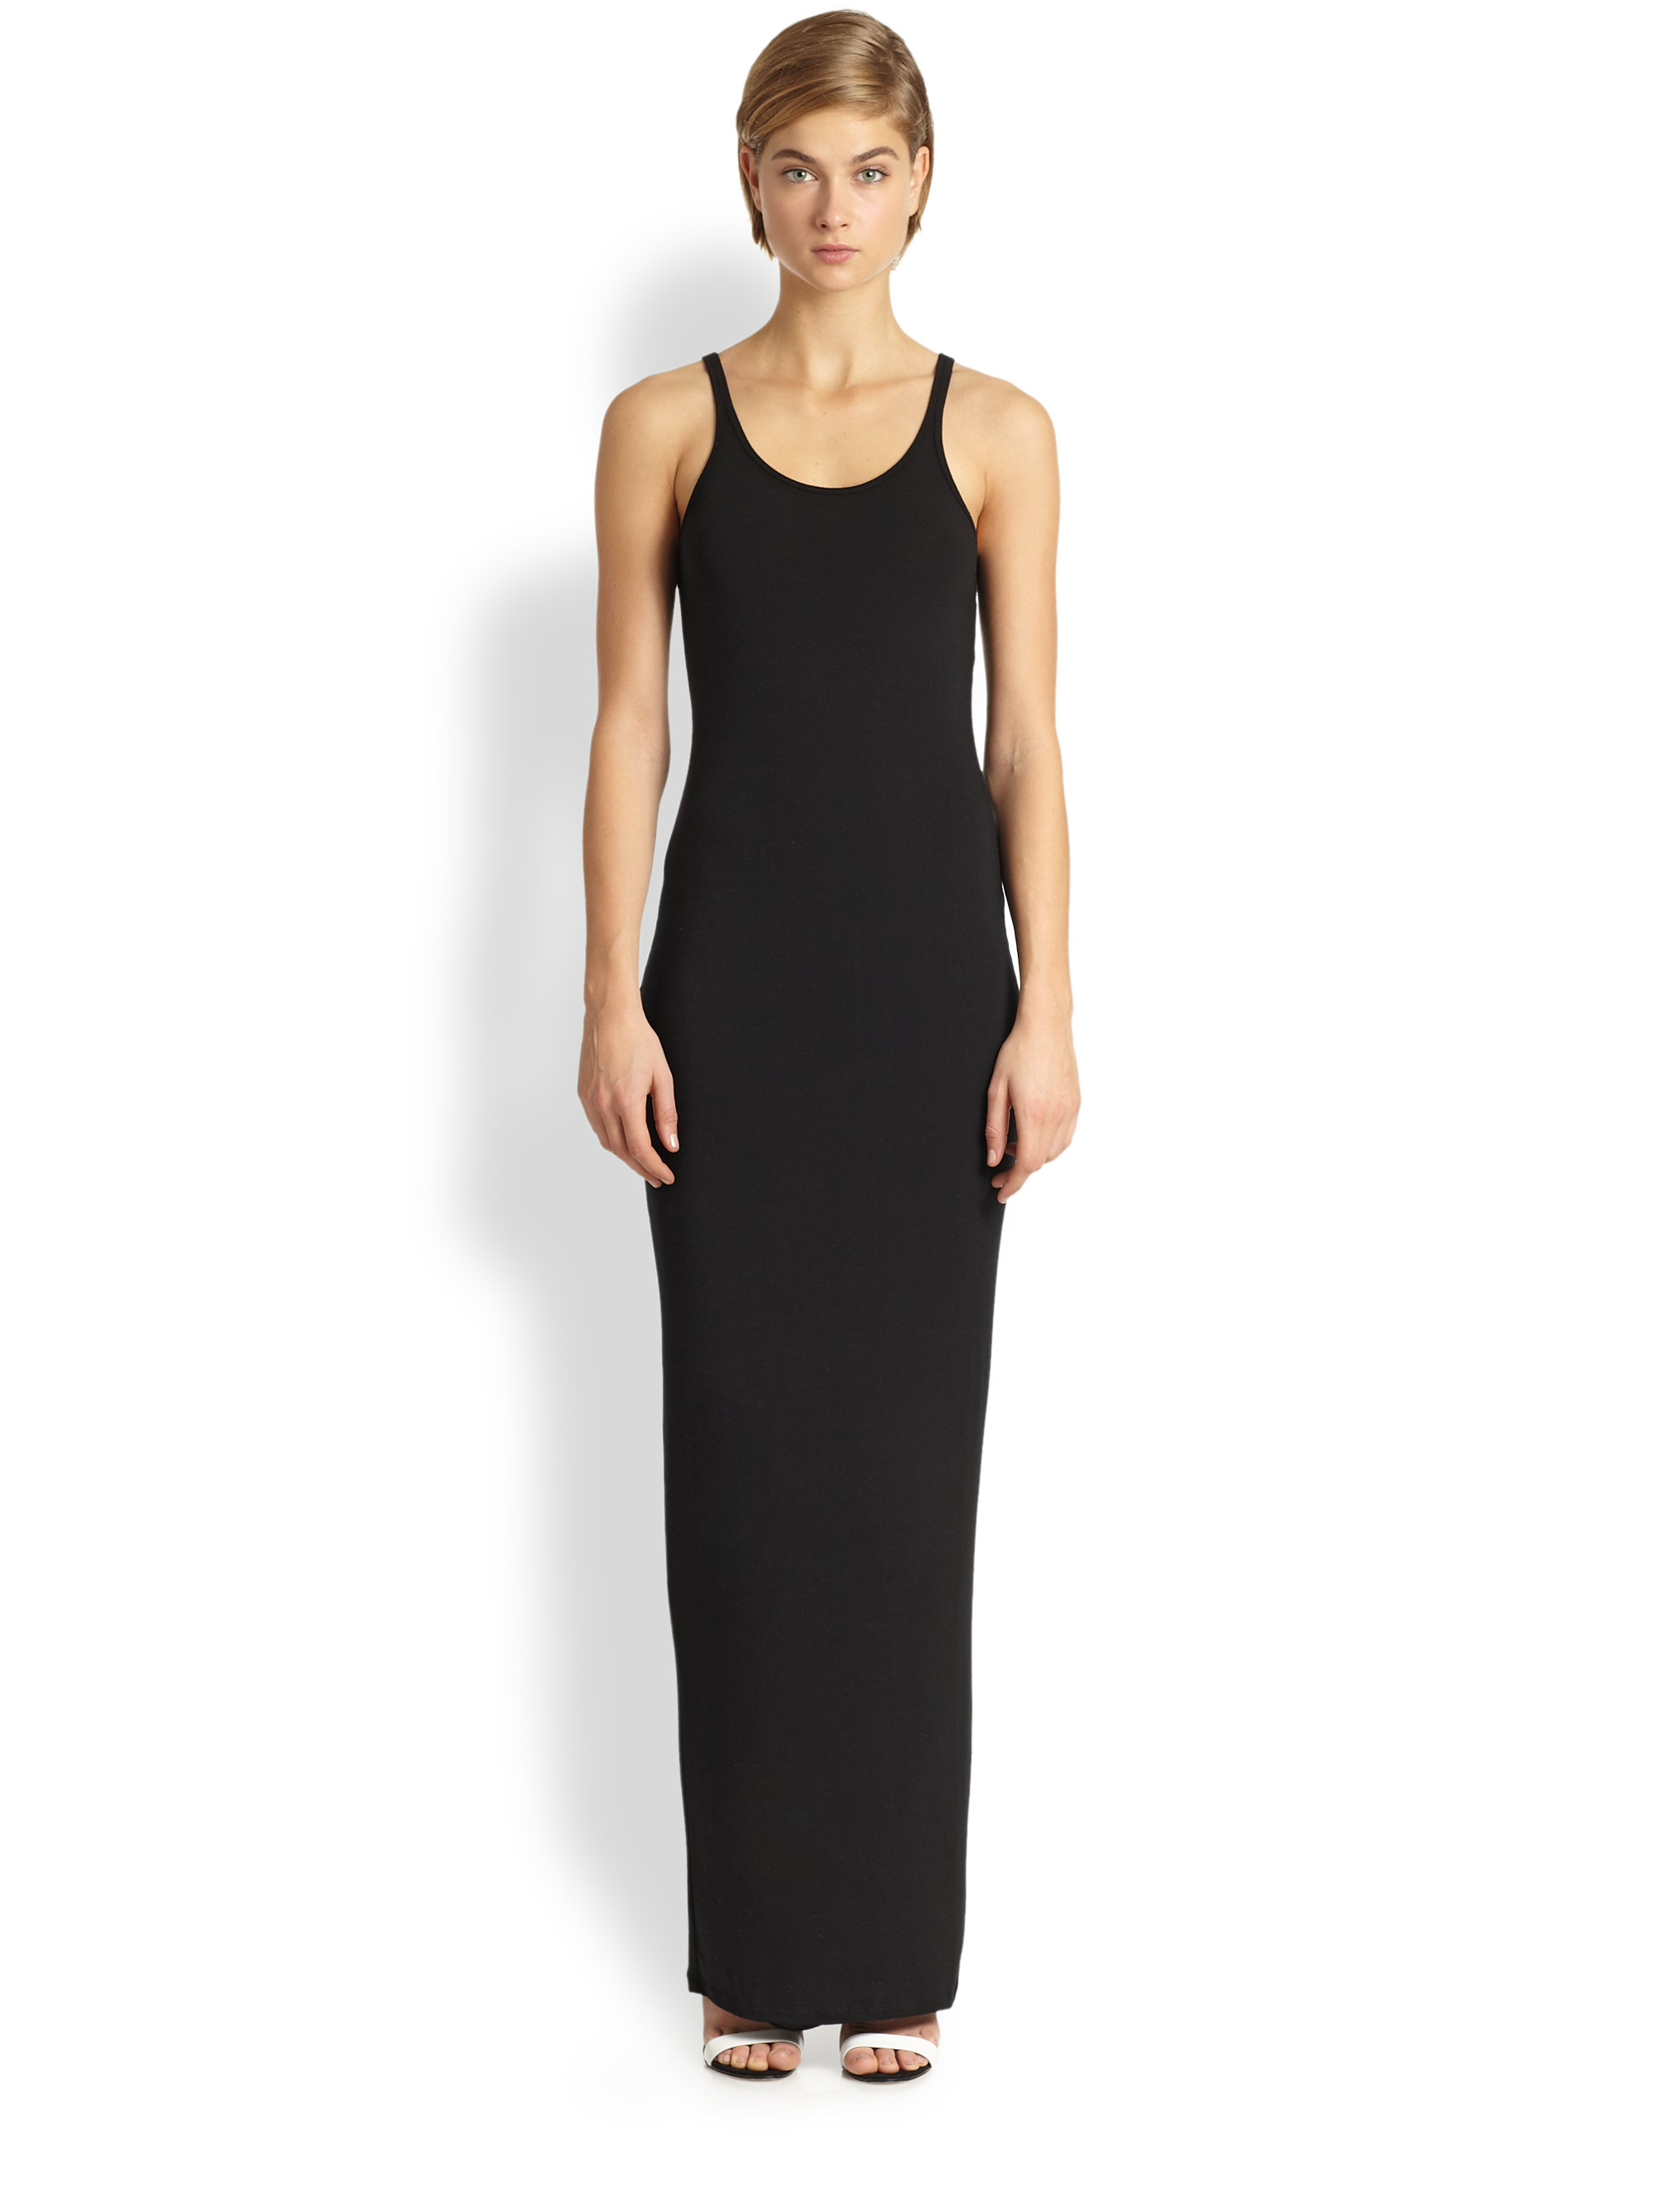 T by alexander wang Stretch Jersey Maxi Dress in Black | Lyst